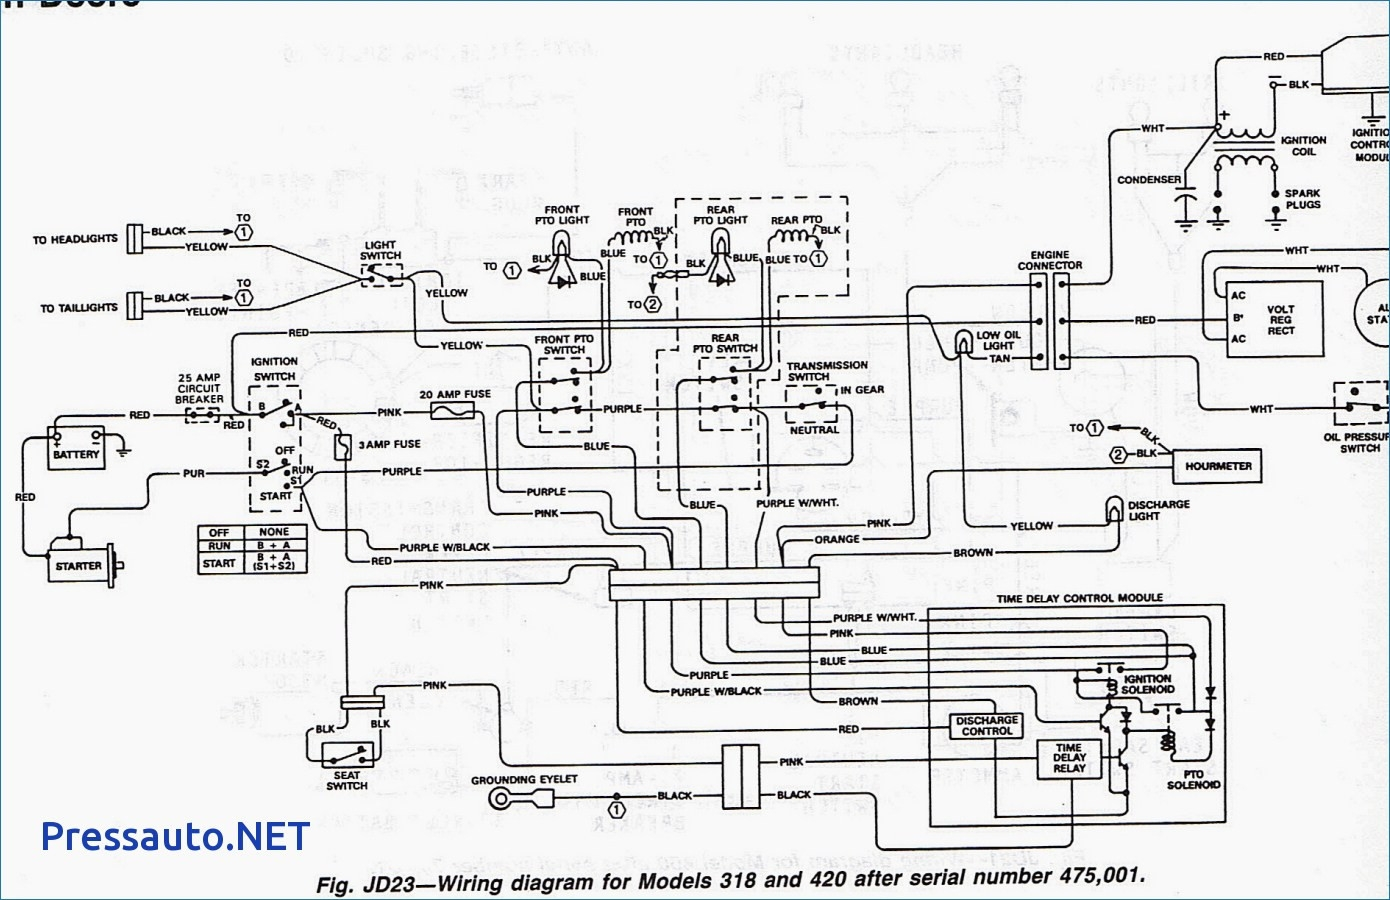 John Deere 6400 Pto Wiring Diagram | Wiring Diagram on john deere 318 wiring-diagram, john deere 6400 water pump, john deere electrical diagrams, john deere z225 wiring-diagram, john deere 755 wiring-diagram, john deere tractor engine diagrams, john deere 6400 fuel system, john deere 6400 timing, john deere 6400 battery, john deere l118 wiring-diagram, john deere 6400 fuse diagram, john deere 3010 wiring-diagram, john deere 6400 tractor, john deere model b engine diagram, john deere 6400 transmission, john deere 6400 troubleshooting, john deere 4430 wiring-diagram, john deere 6400 air conditioning, john deere schematics, john deere tractor wiring,